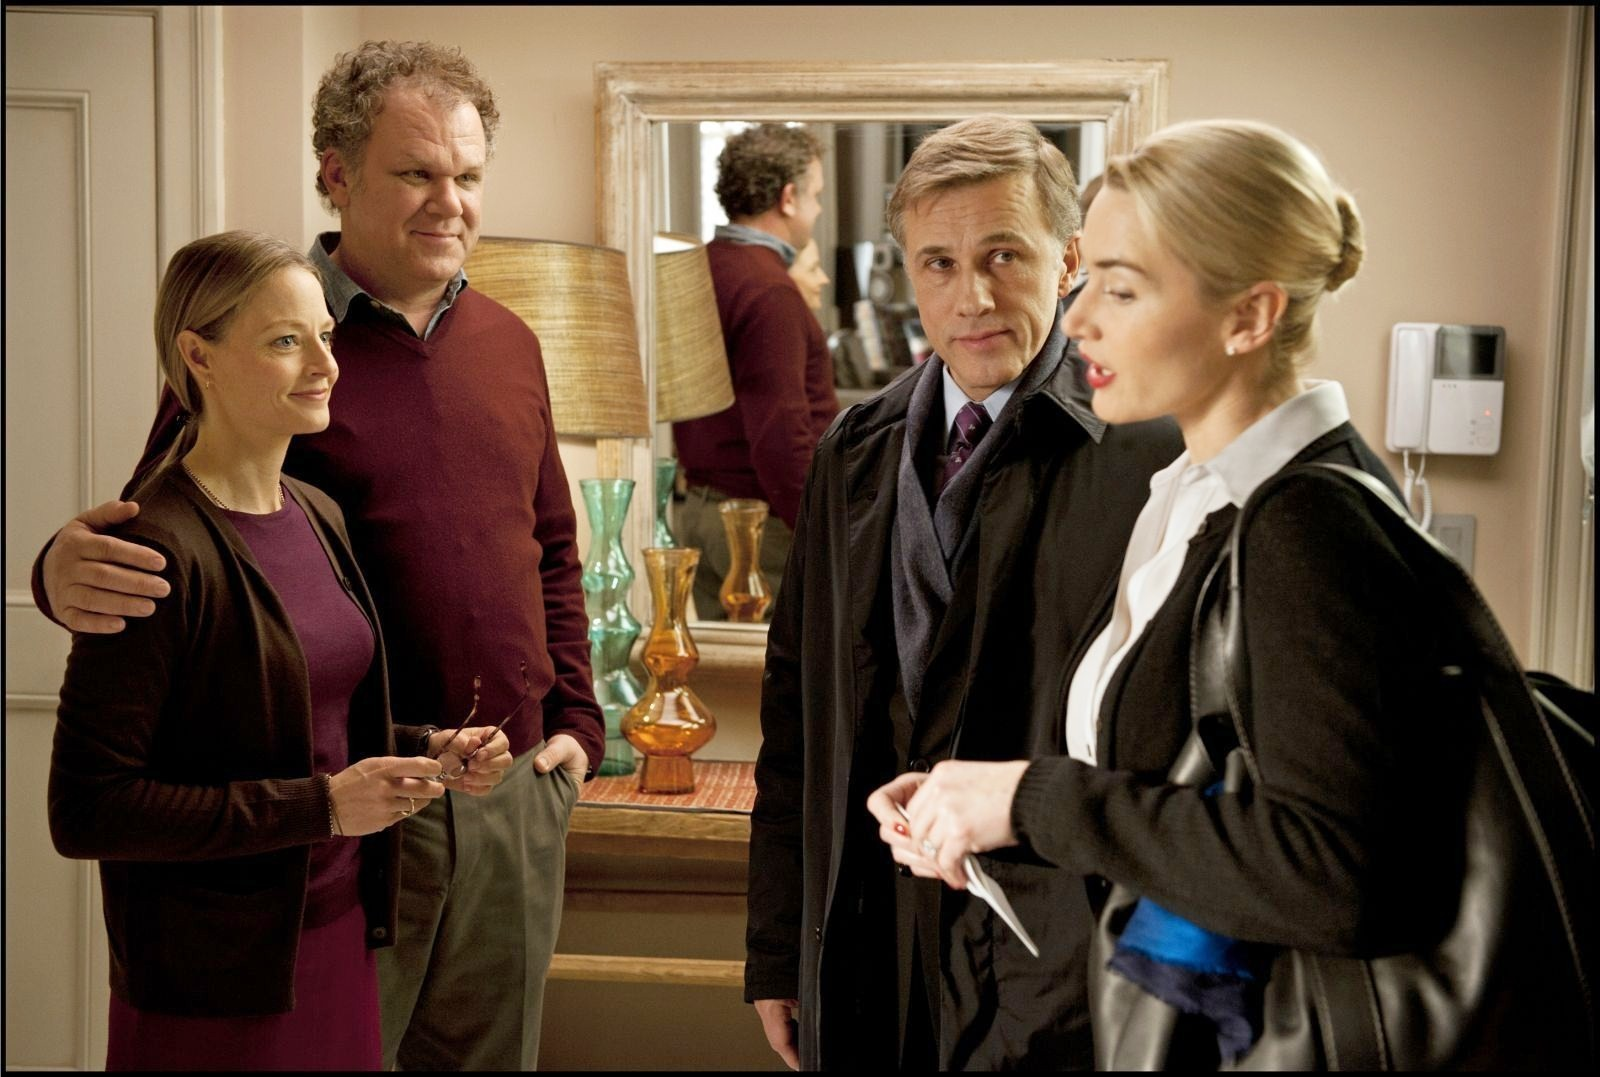 Jodie Foster, John C. Reilly, Christoph Waltz and Kate Winslet in Carnage (2011)